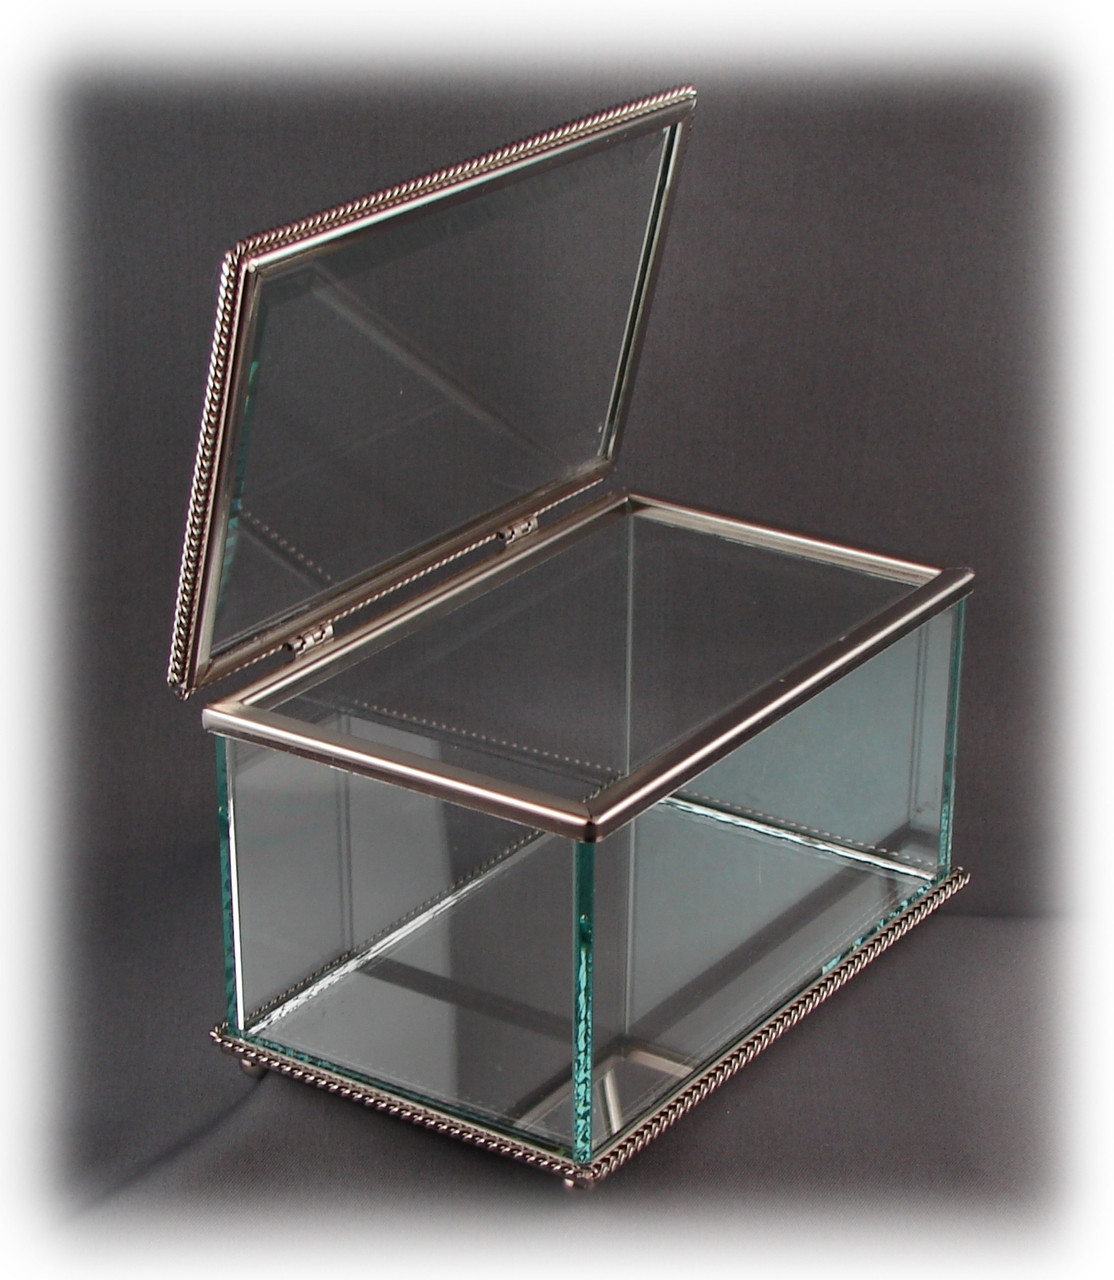 "Glass Jewelry Box, Engravable Glass, w/Non-Tarnishing Silver Trim, 8"" x 3-3/4"" x 3"" Tall, w/Hinged Glass Top"